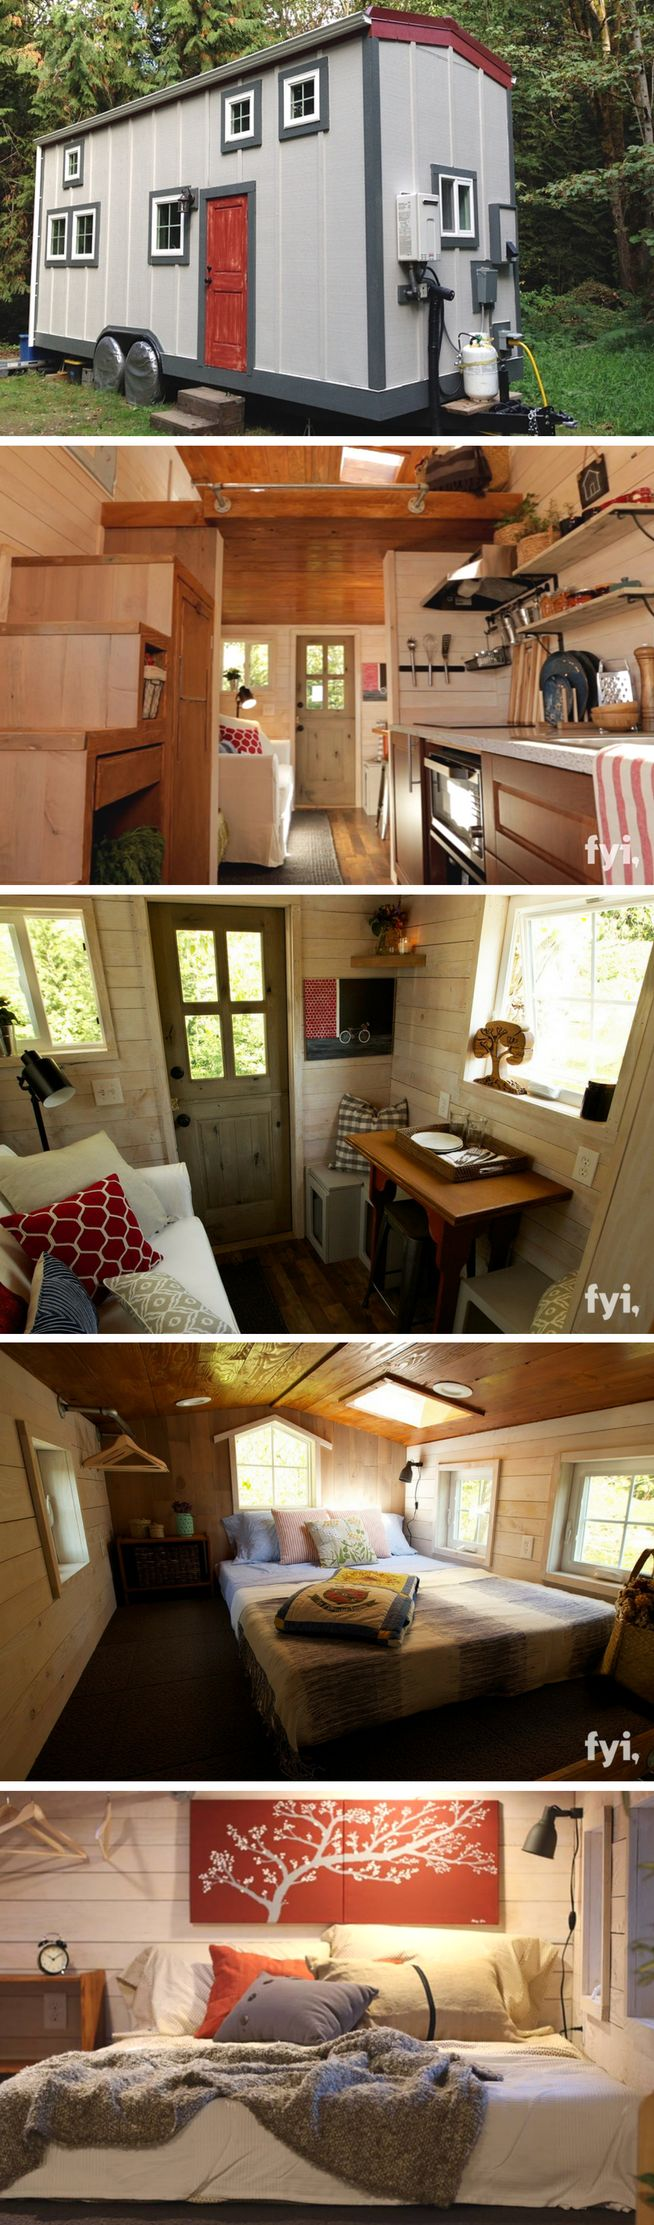 "The ""Barn Chic"" tiny house, featured on Tiny House Nation"